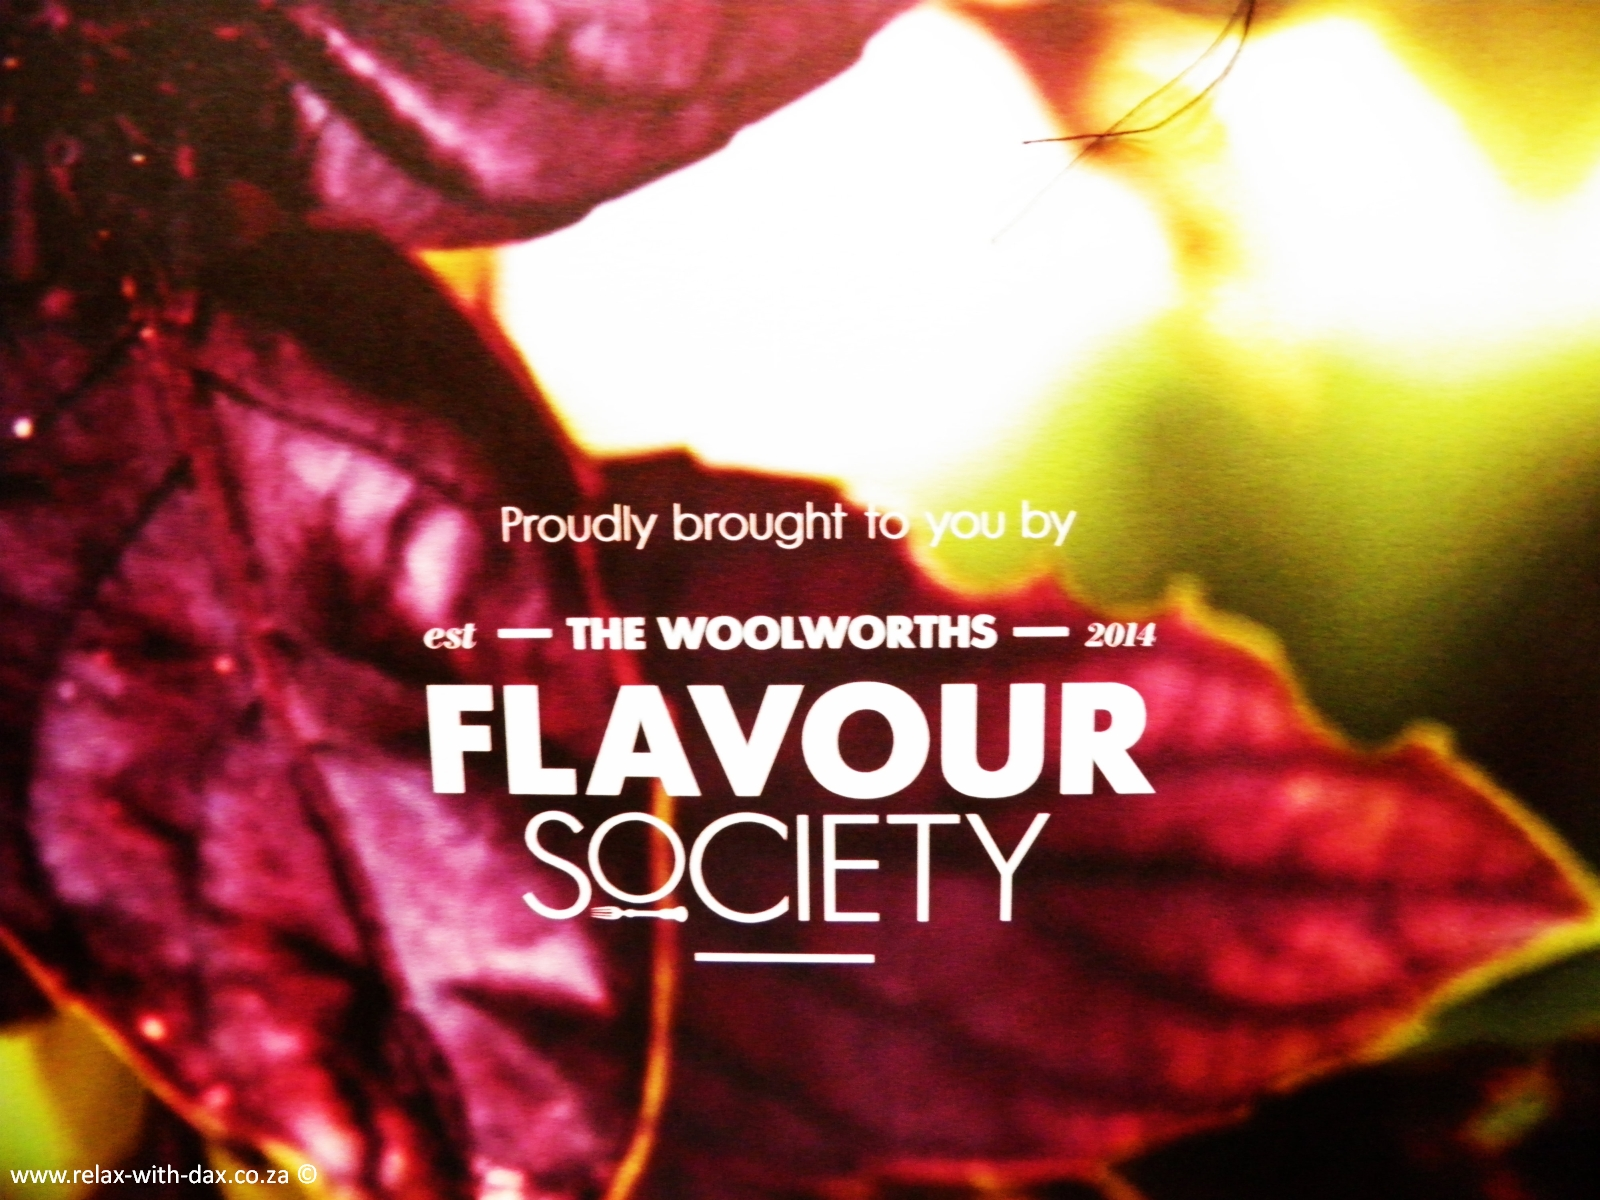 Woolworths Flavour Society